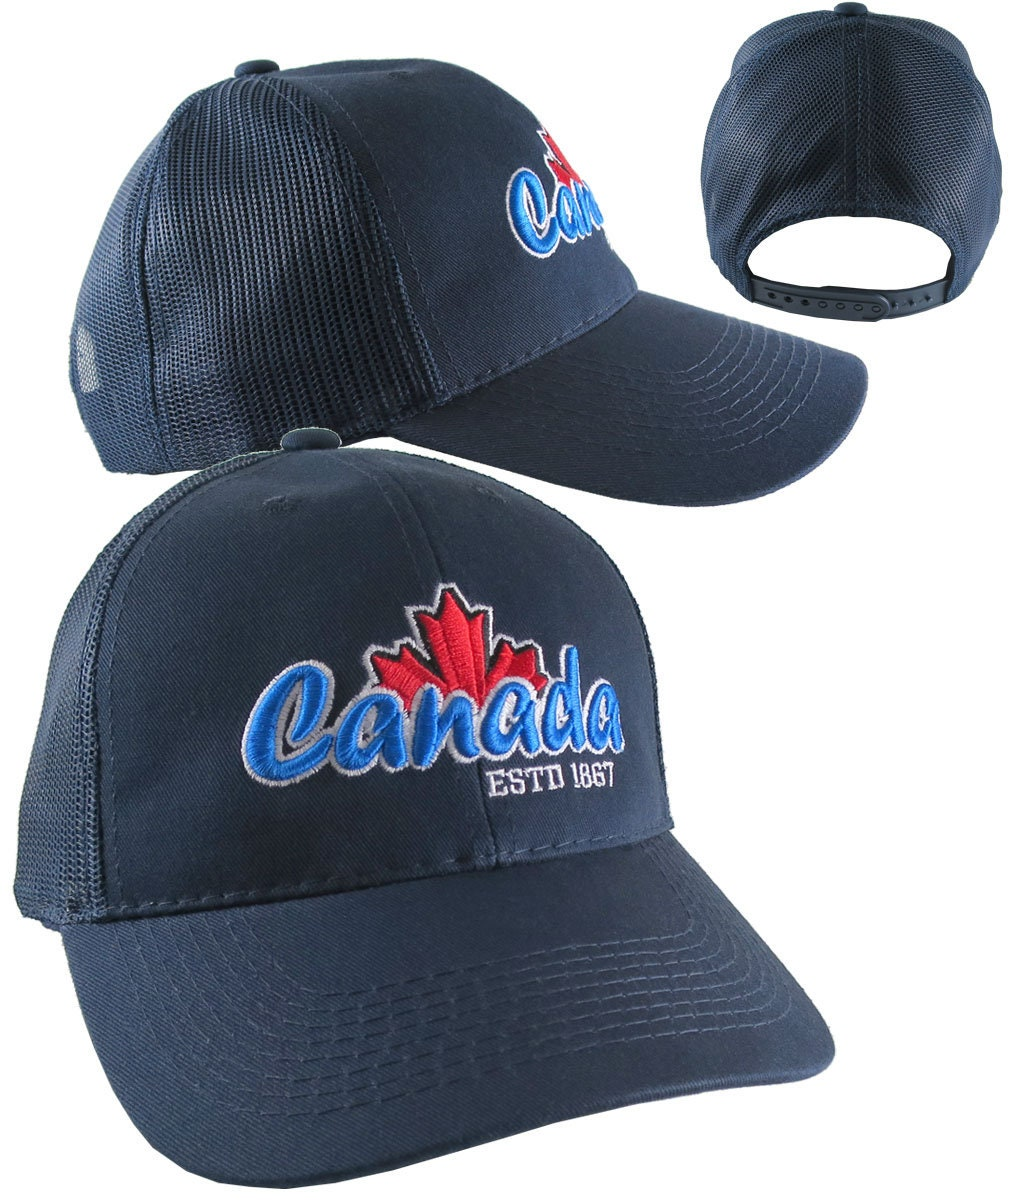 288c677ee95fa Canada 3D Puff Raised Embroidery ESTD 1867 on an Adjustable Navy Blue Full  Fit Classic Trucker Cap Happy Canada Day + Option to Personalize